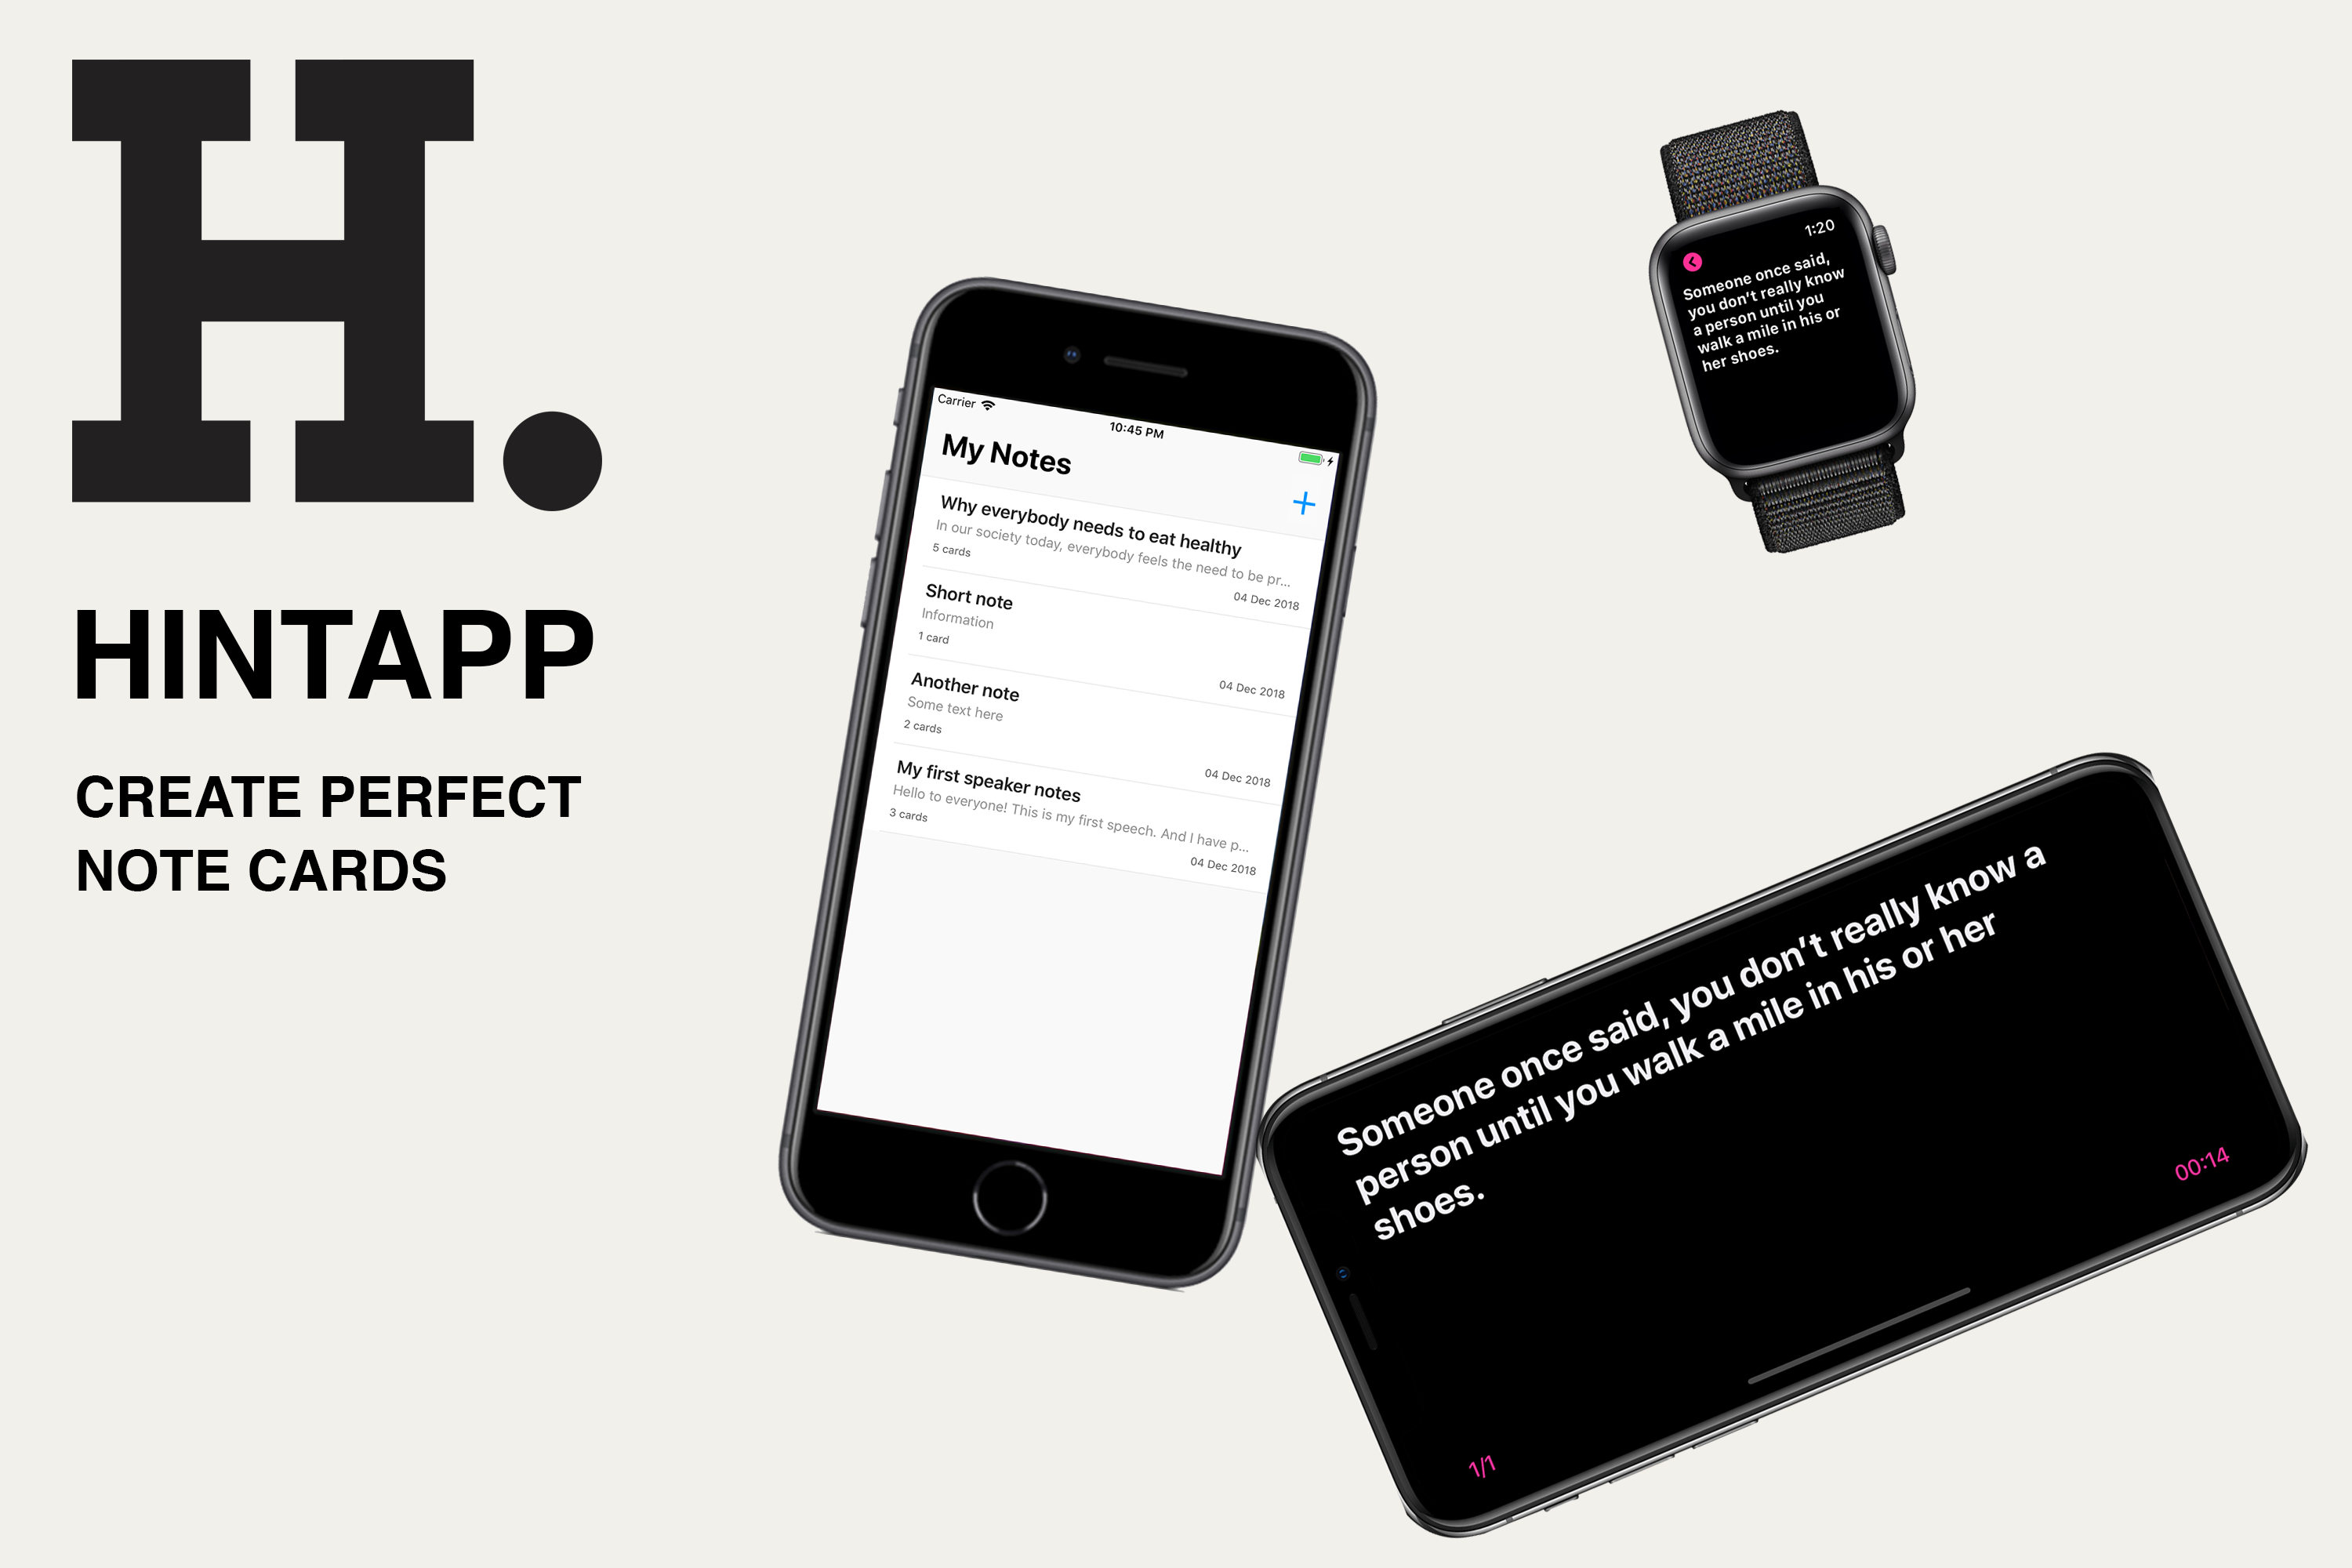 Hintapp - An app for creating perfect note cards (cue cards)